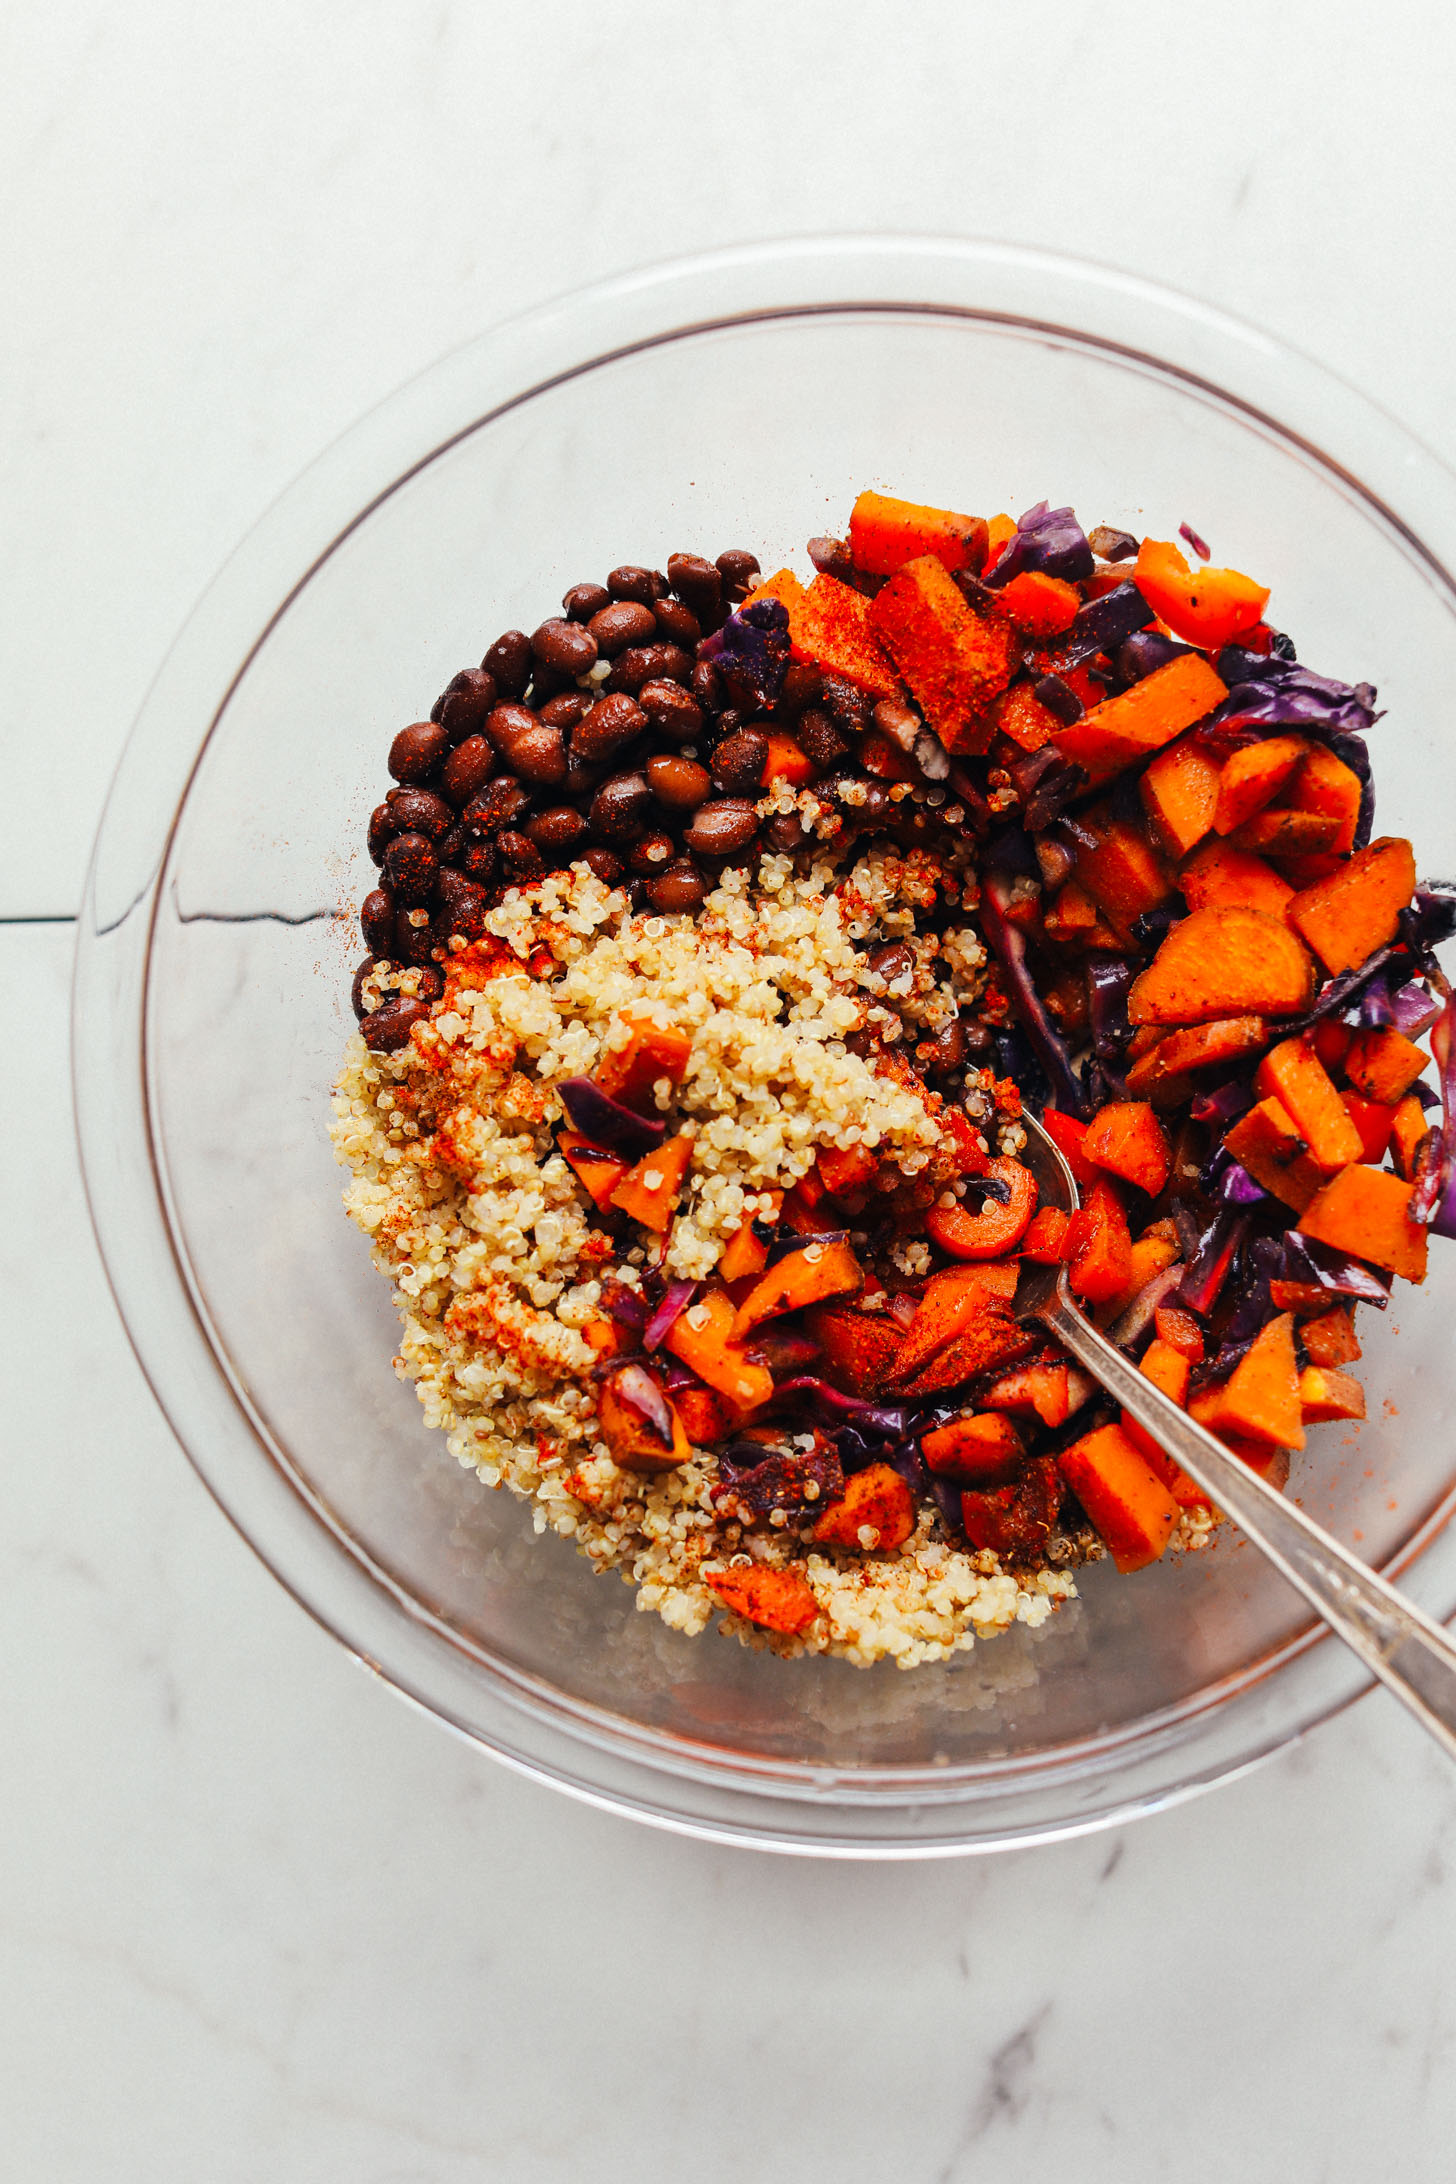 Mixing bowl with quinoa, black beans, sweet potatoes, cabbage, red bell pepper, and spices for filling portobello mushrooms